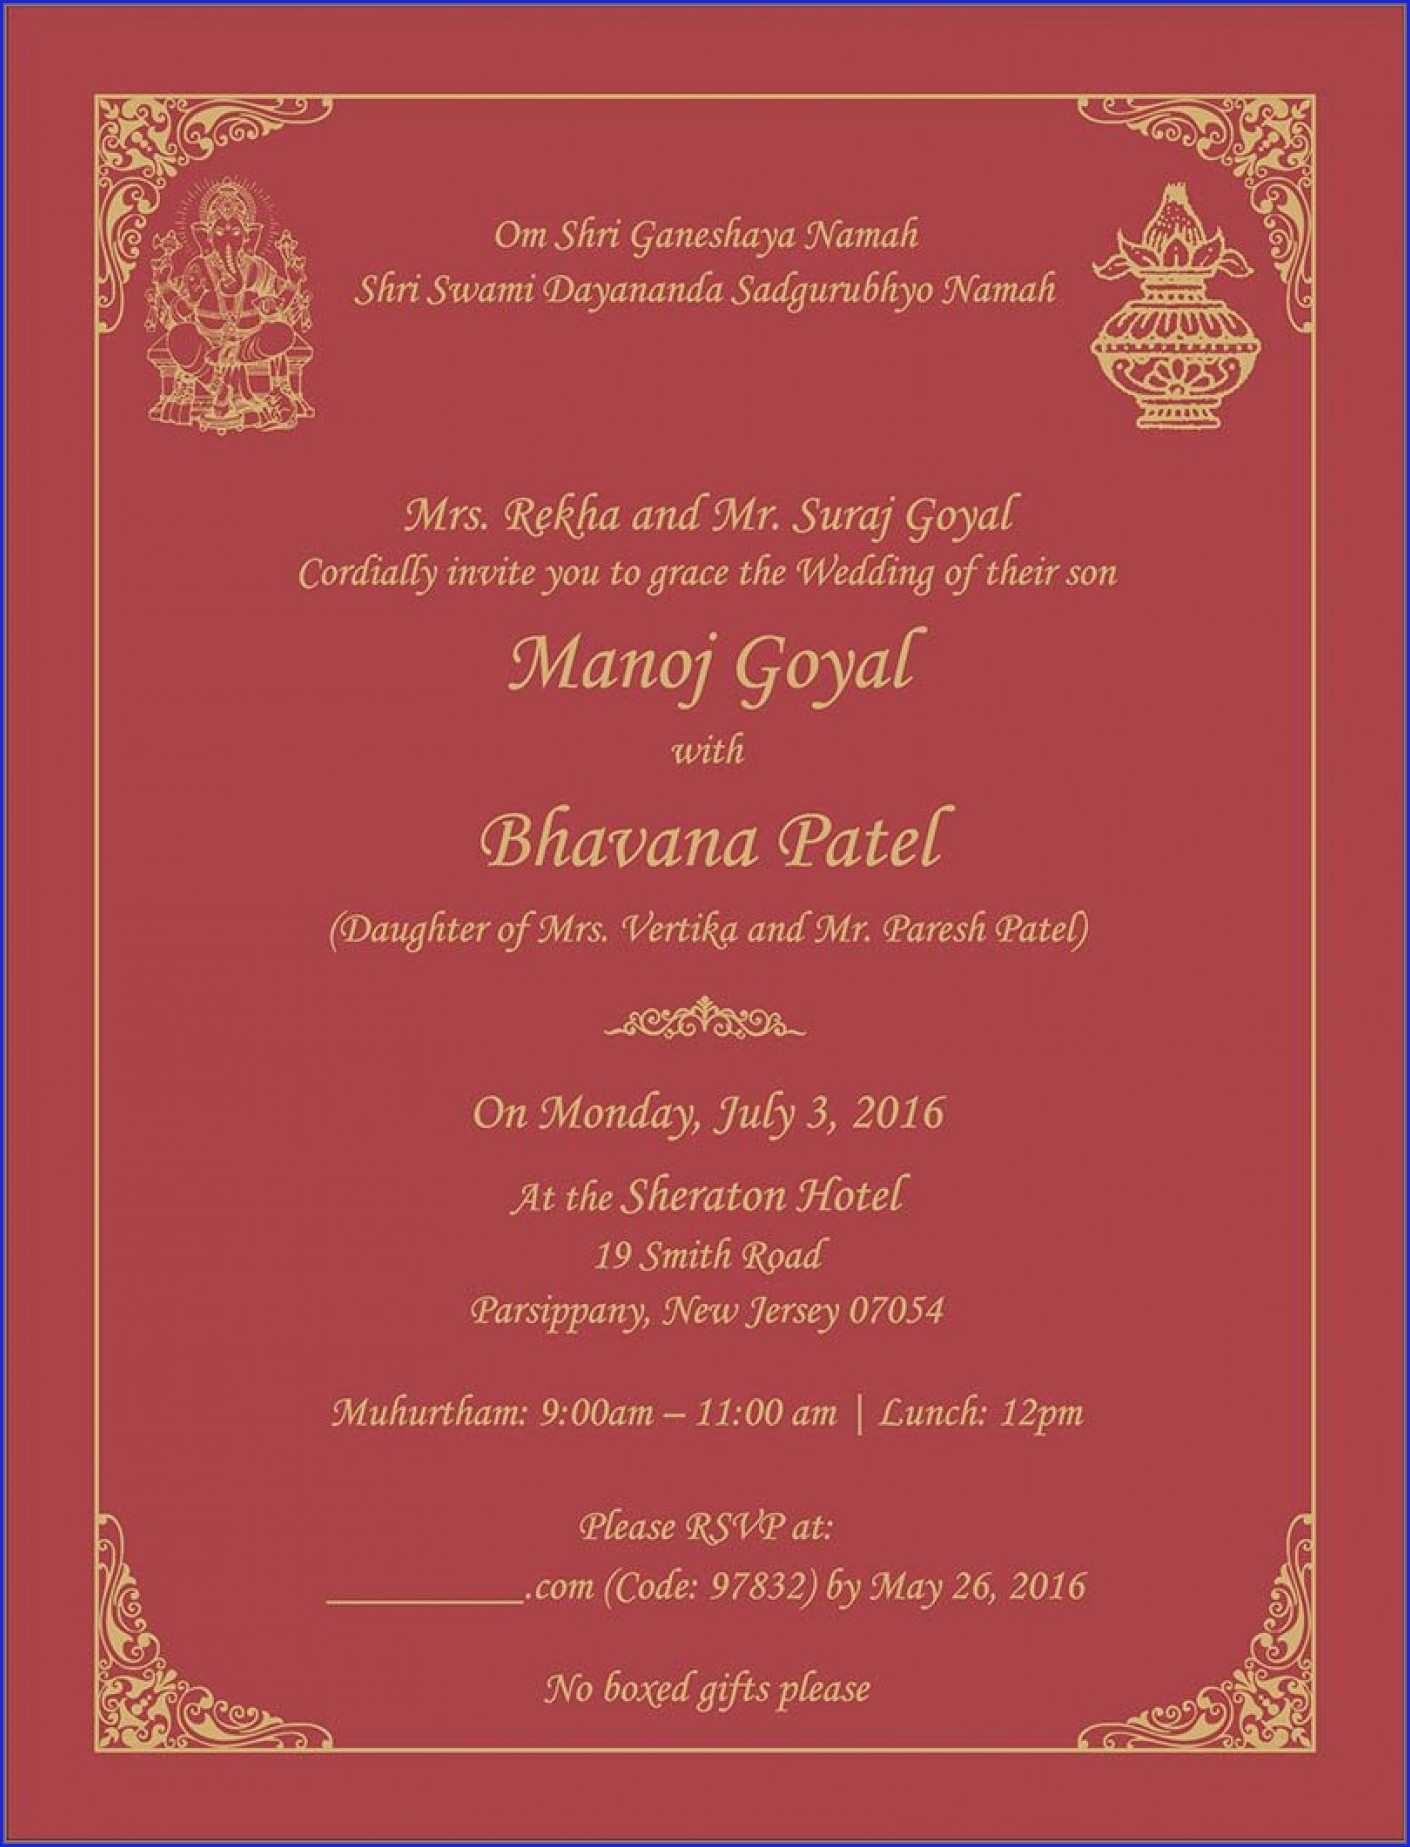 Indian Wedding Reception Invitation Wording Samples